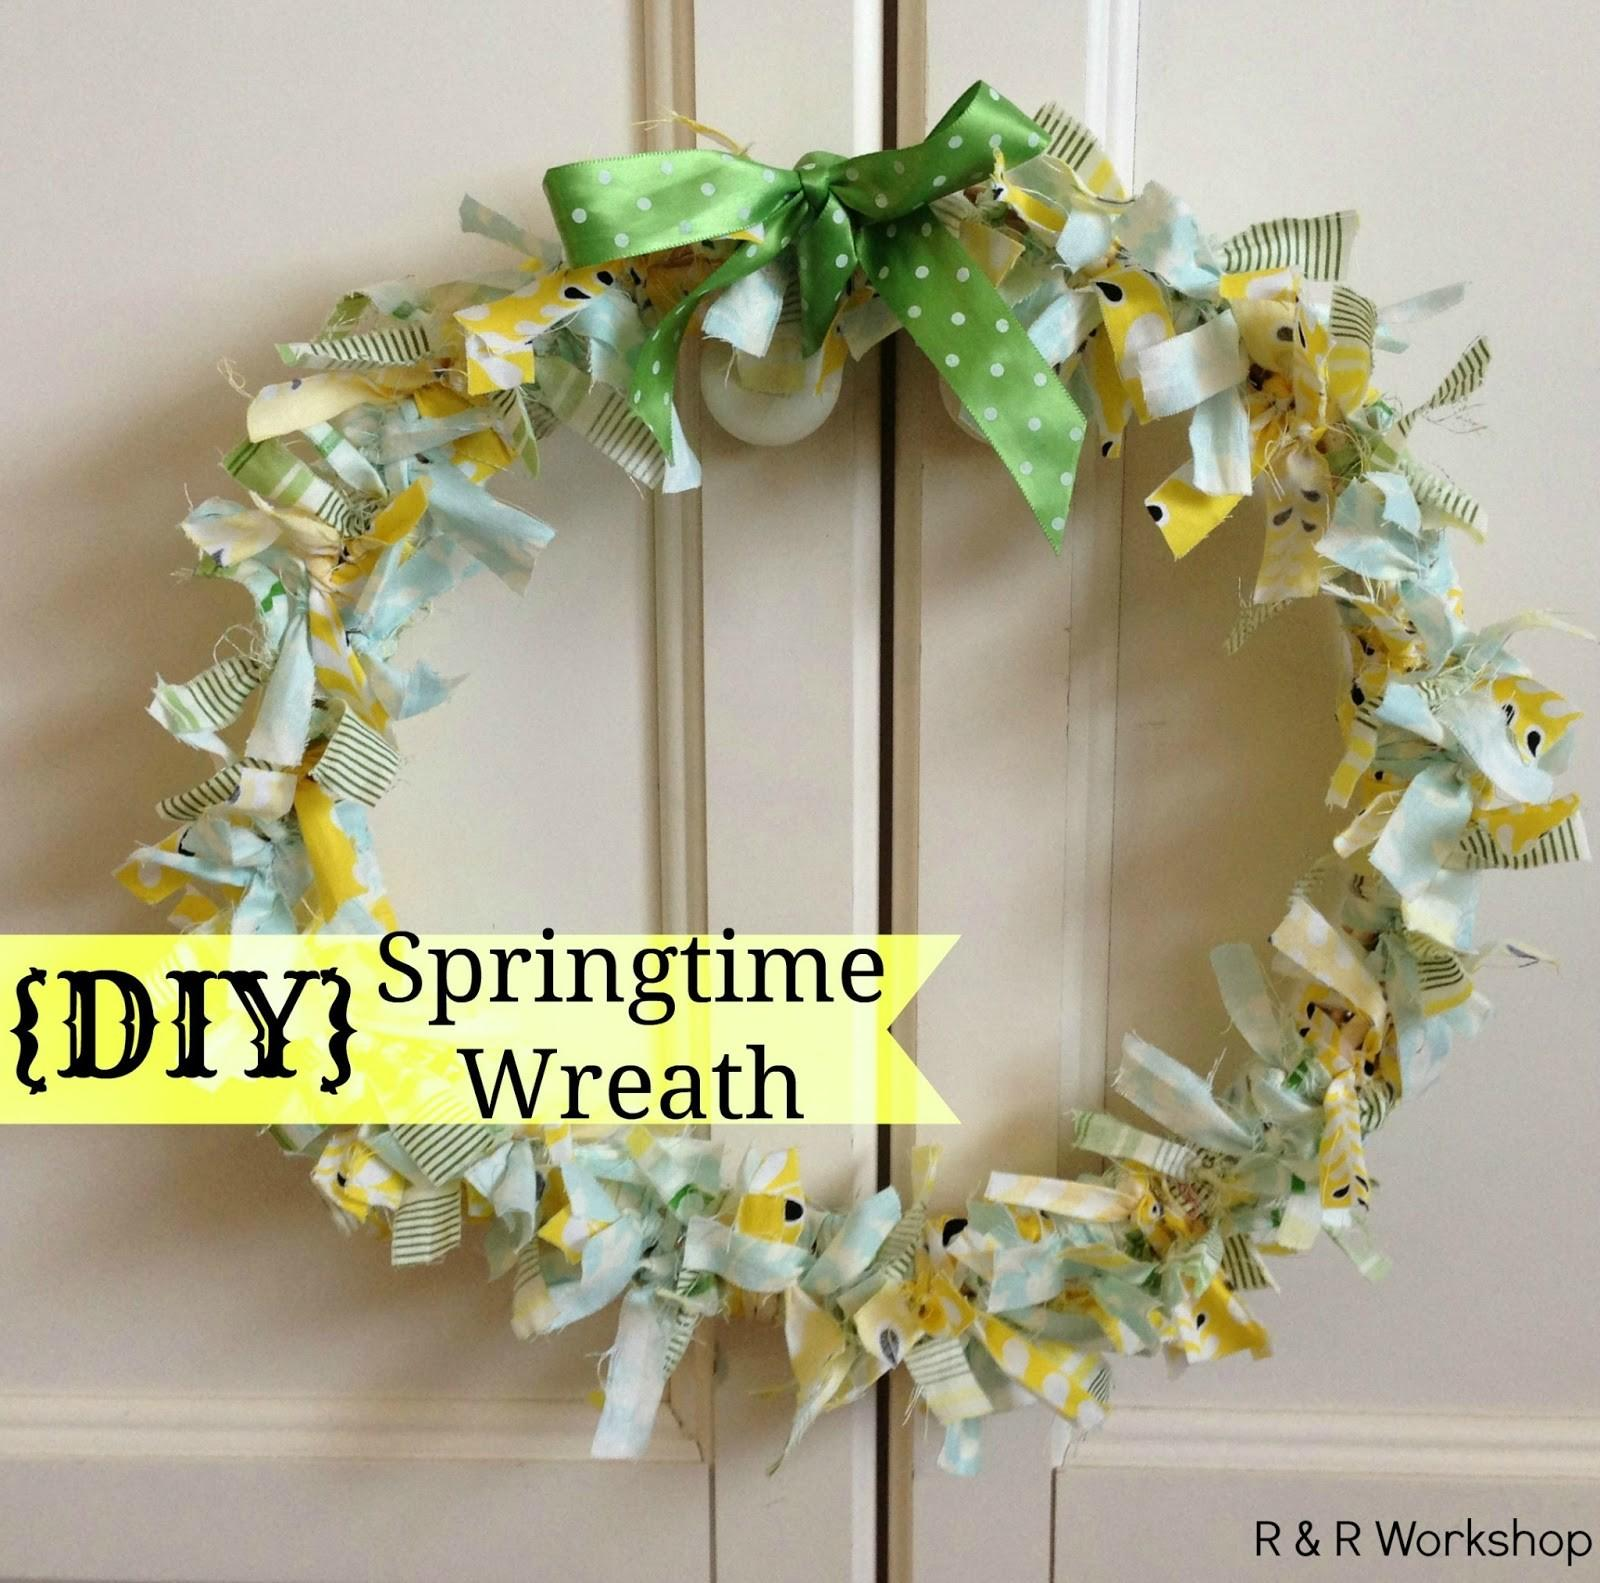 Diy Springtime Wreath Quick Easy Craft Idea Guest